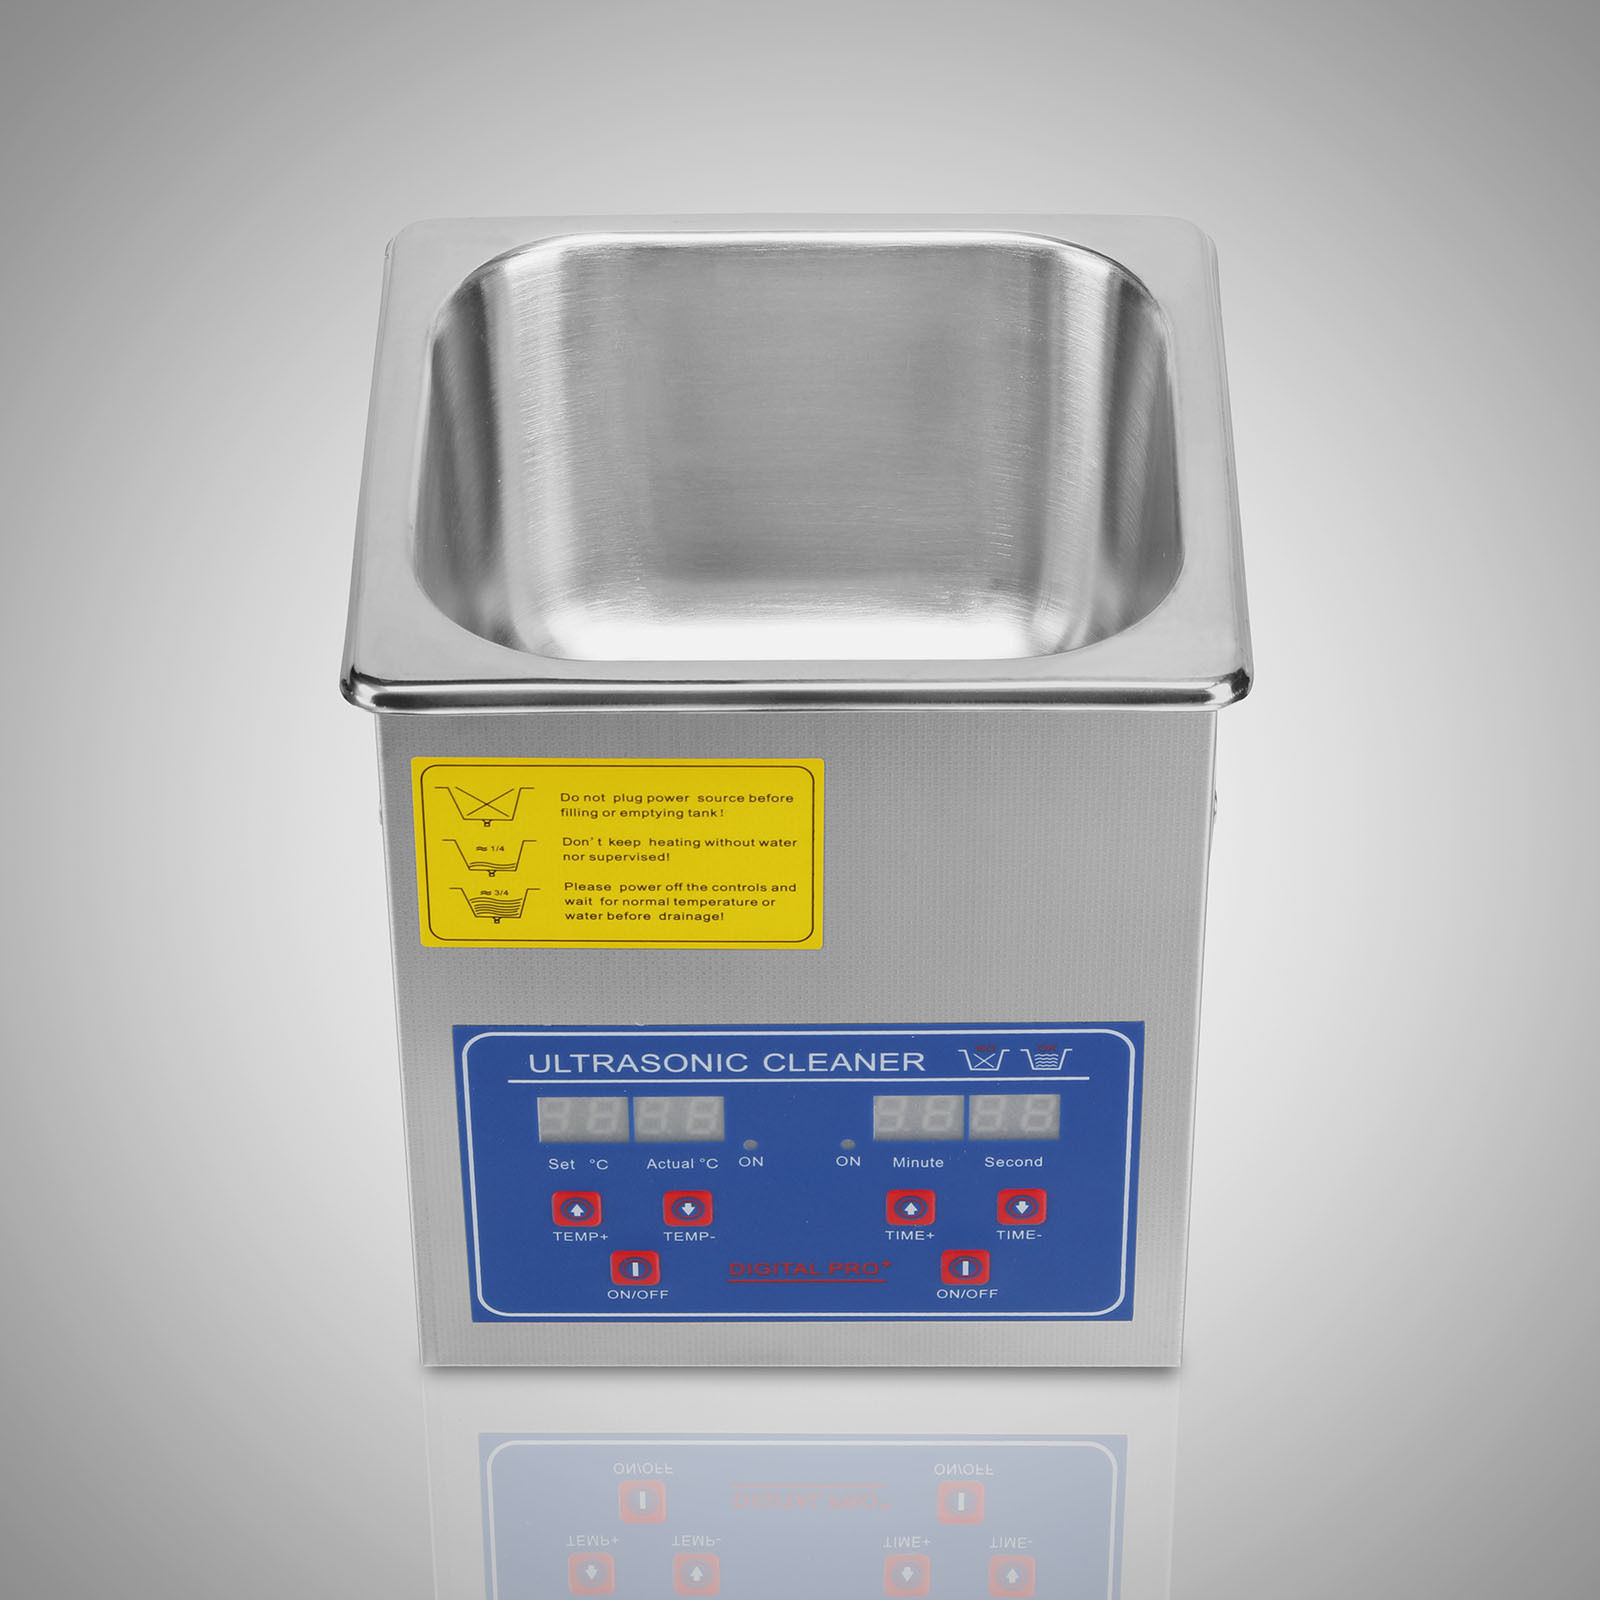 Frequency Ultrasonic Cleaner : Ultrasonic cleaners cleaning supplies l